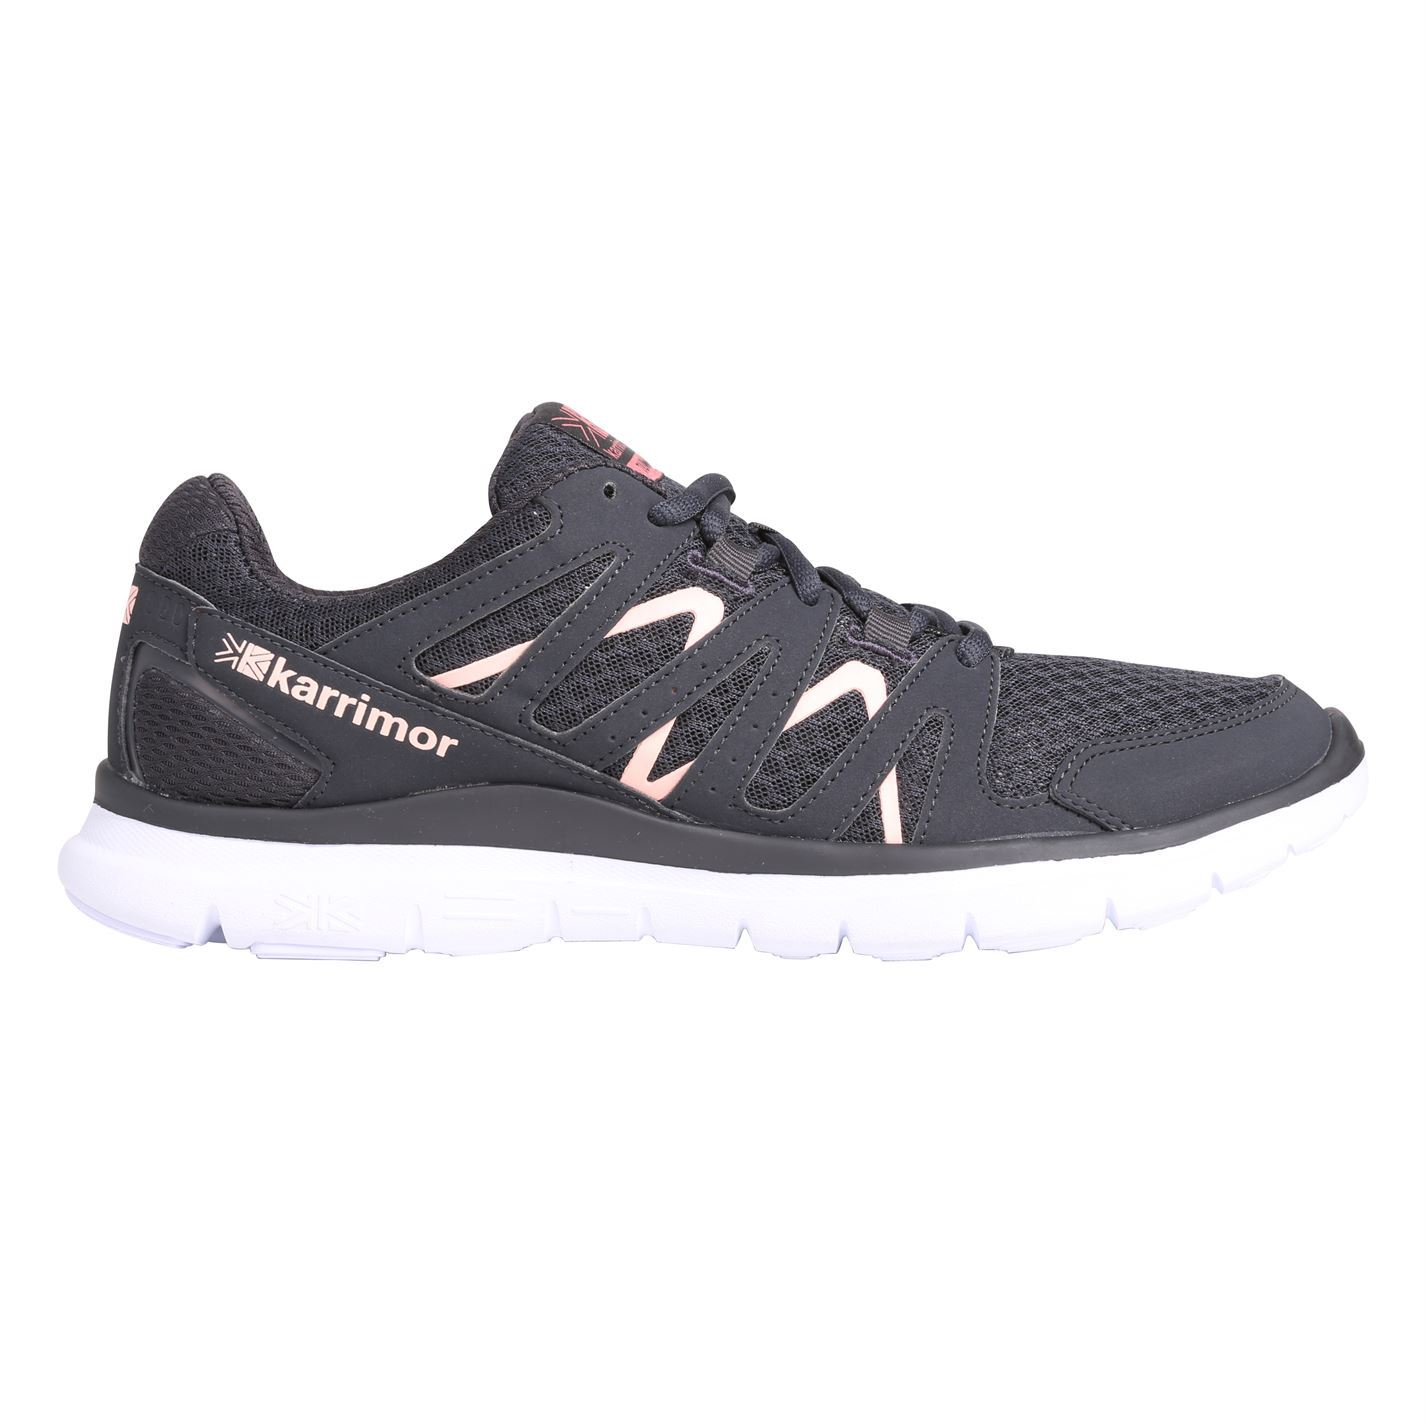 b05fbed29 ... Karrimor Duma Running Shoes Womens Charcoal Coral Run Jogging Trainers  Sneakers ...